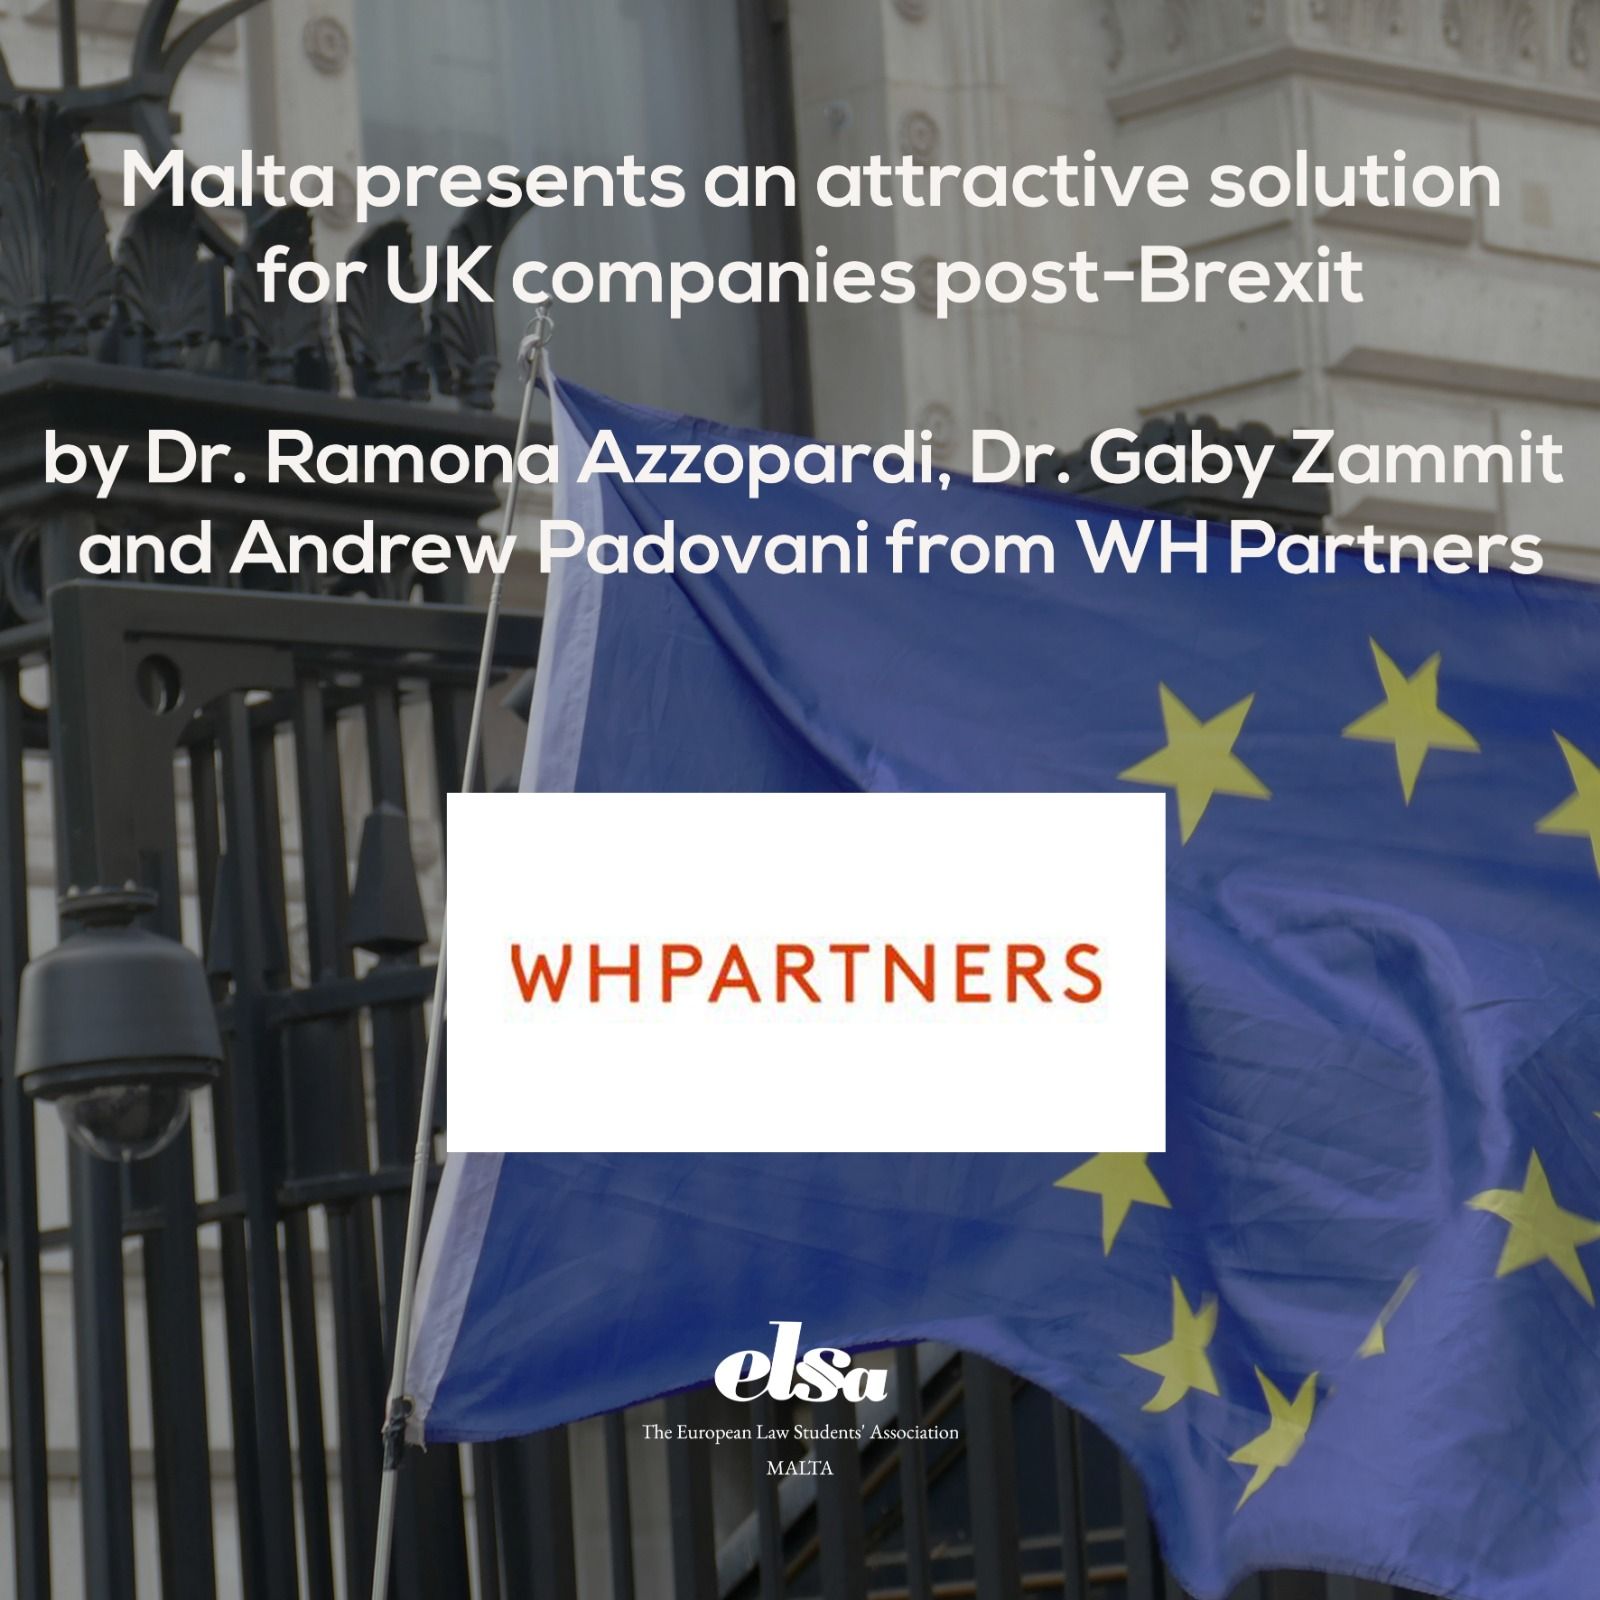 Malta presents an attractive solution for UK companies post-Brexit